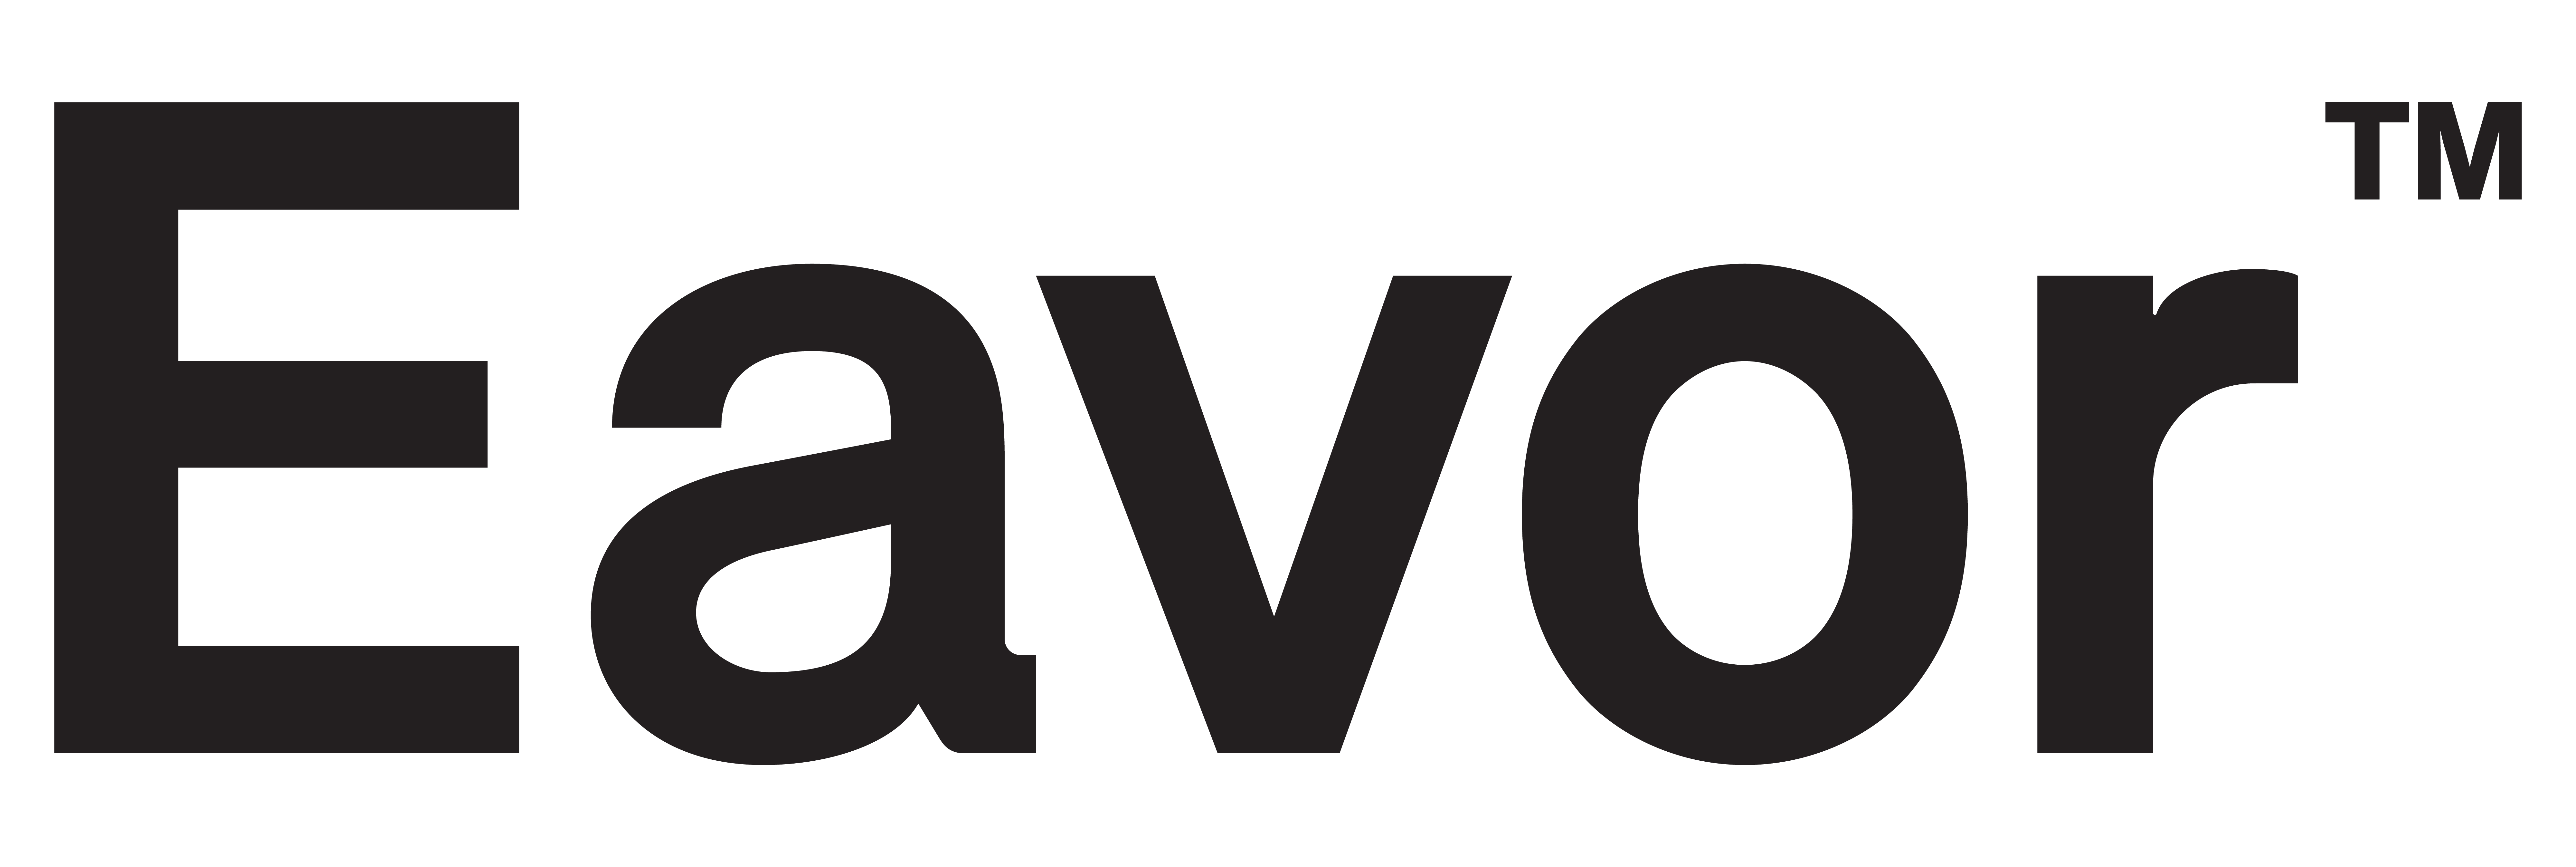 The World's first truly scalable form of Green Baseload Power demonstrated by Eavor Technologies Inc.